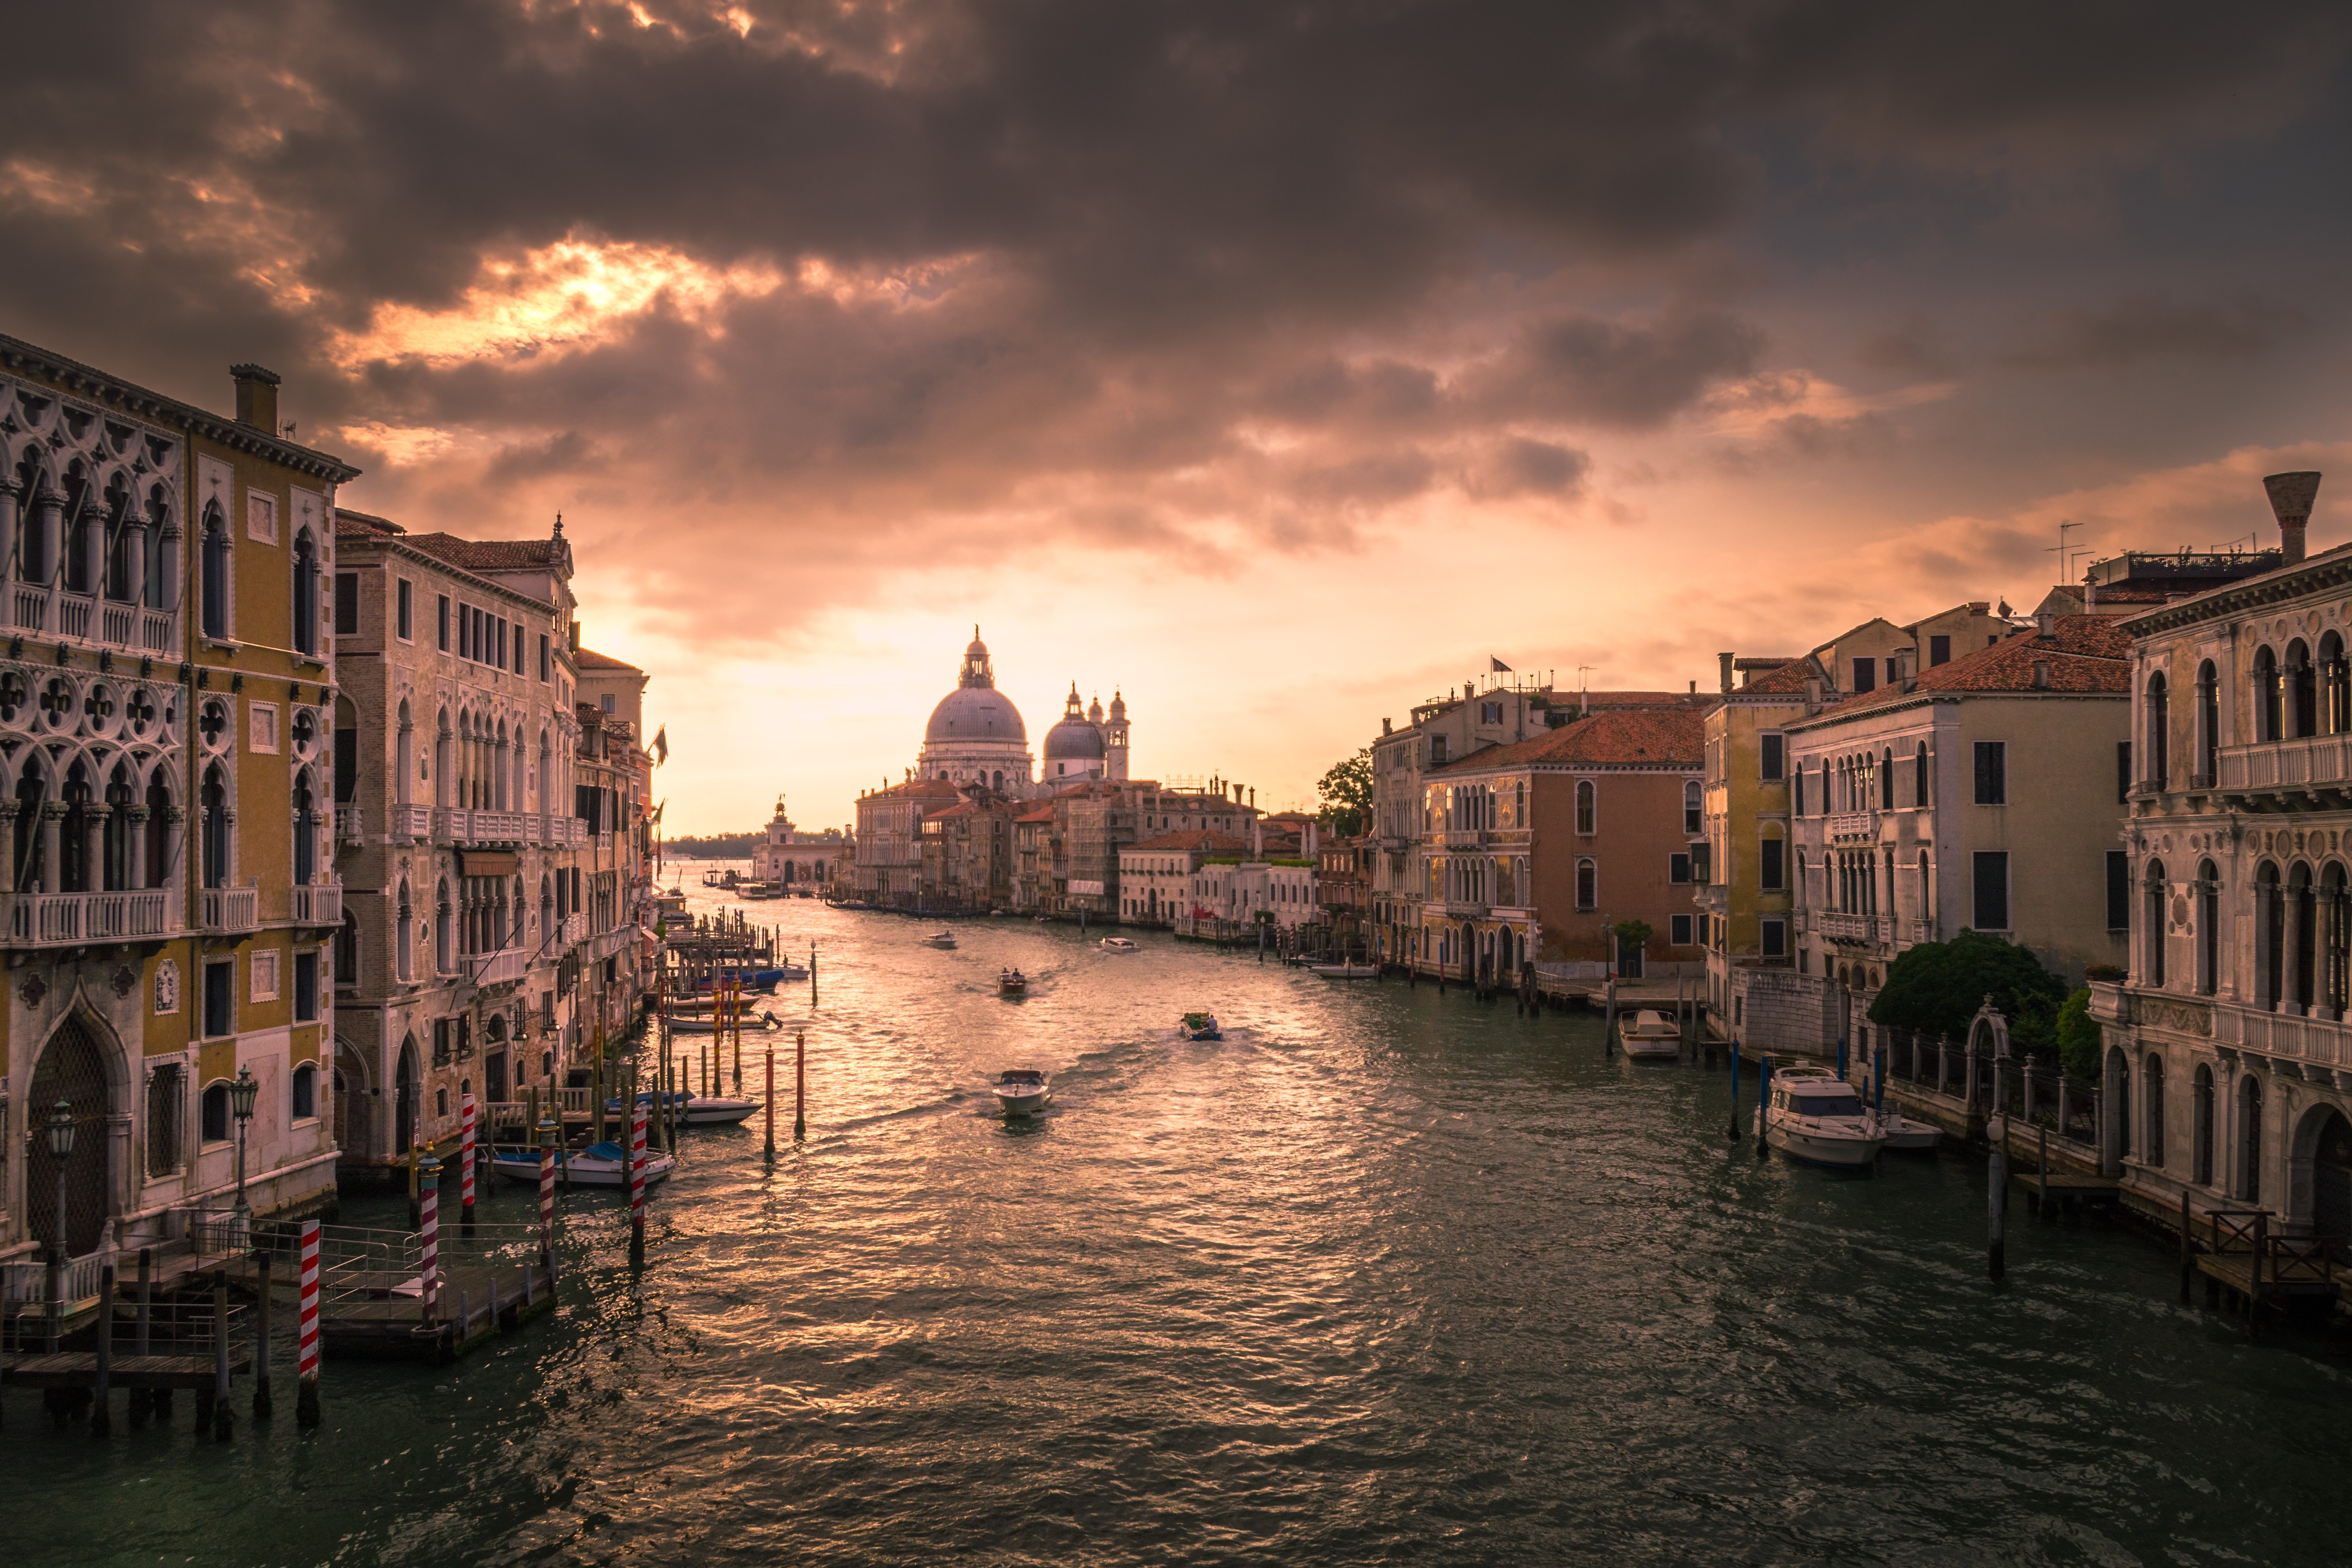 Two rows of buildings surrounded by water and sunset in Venice